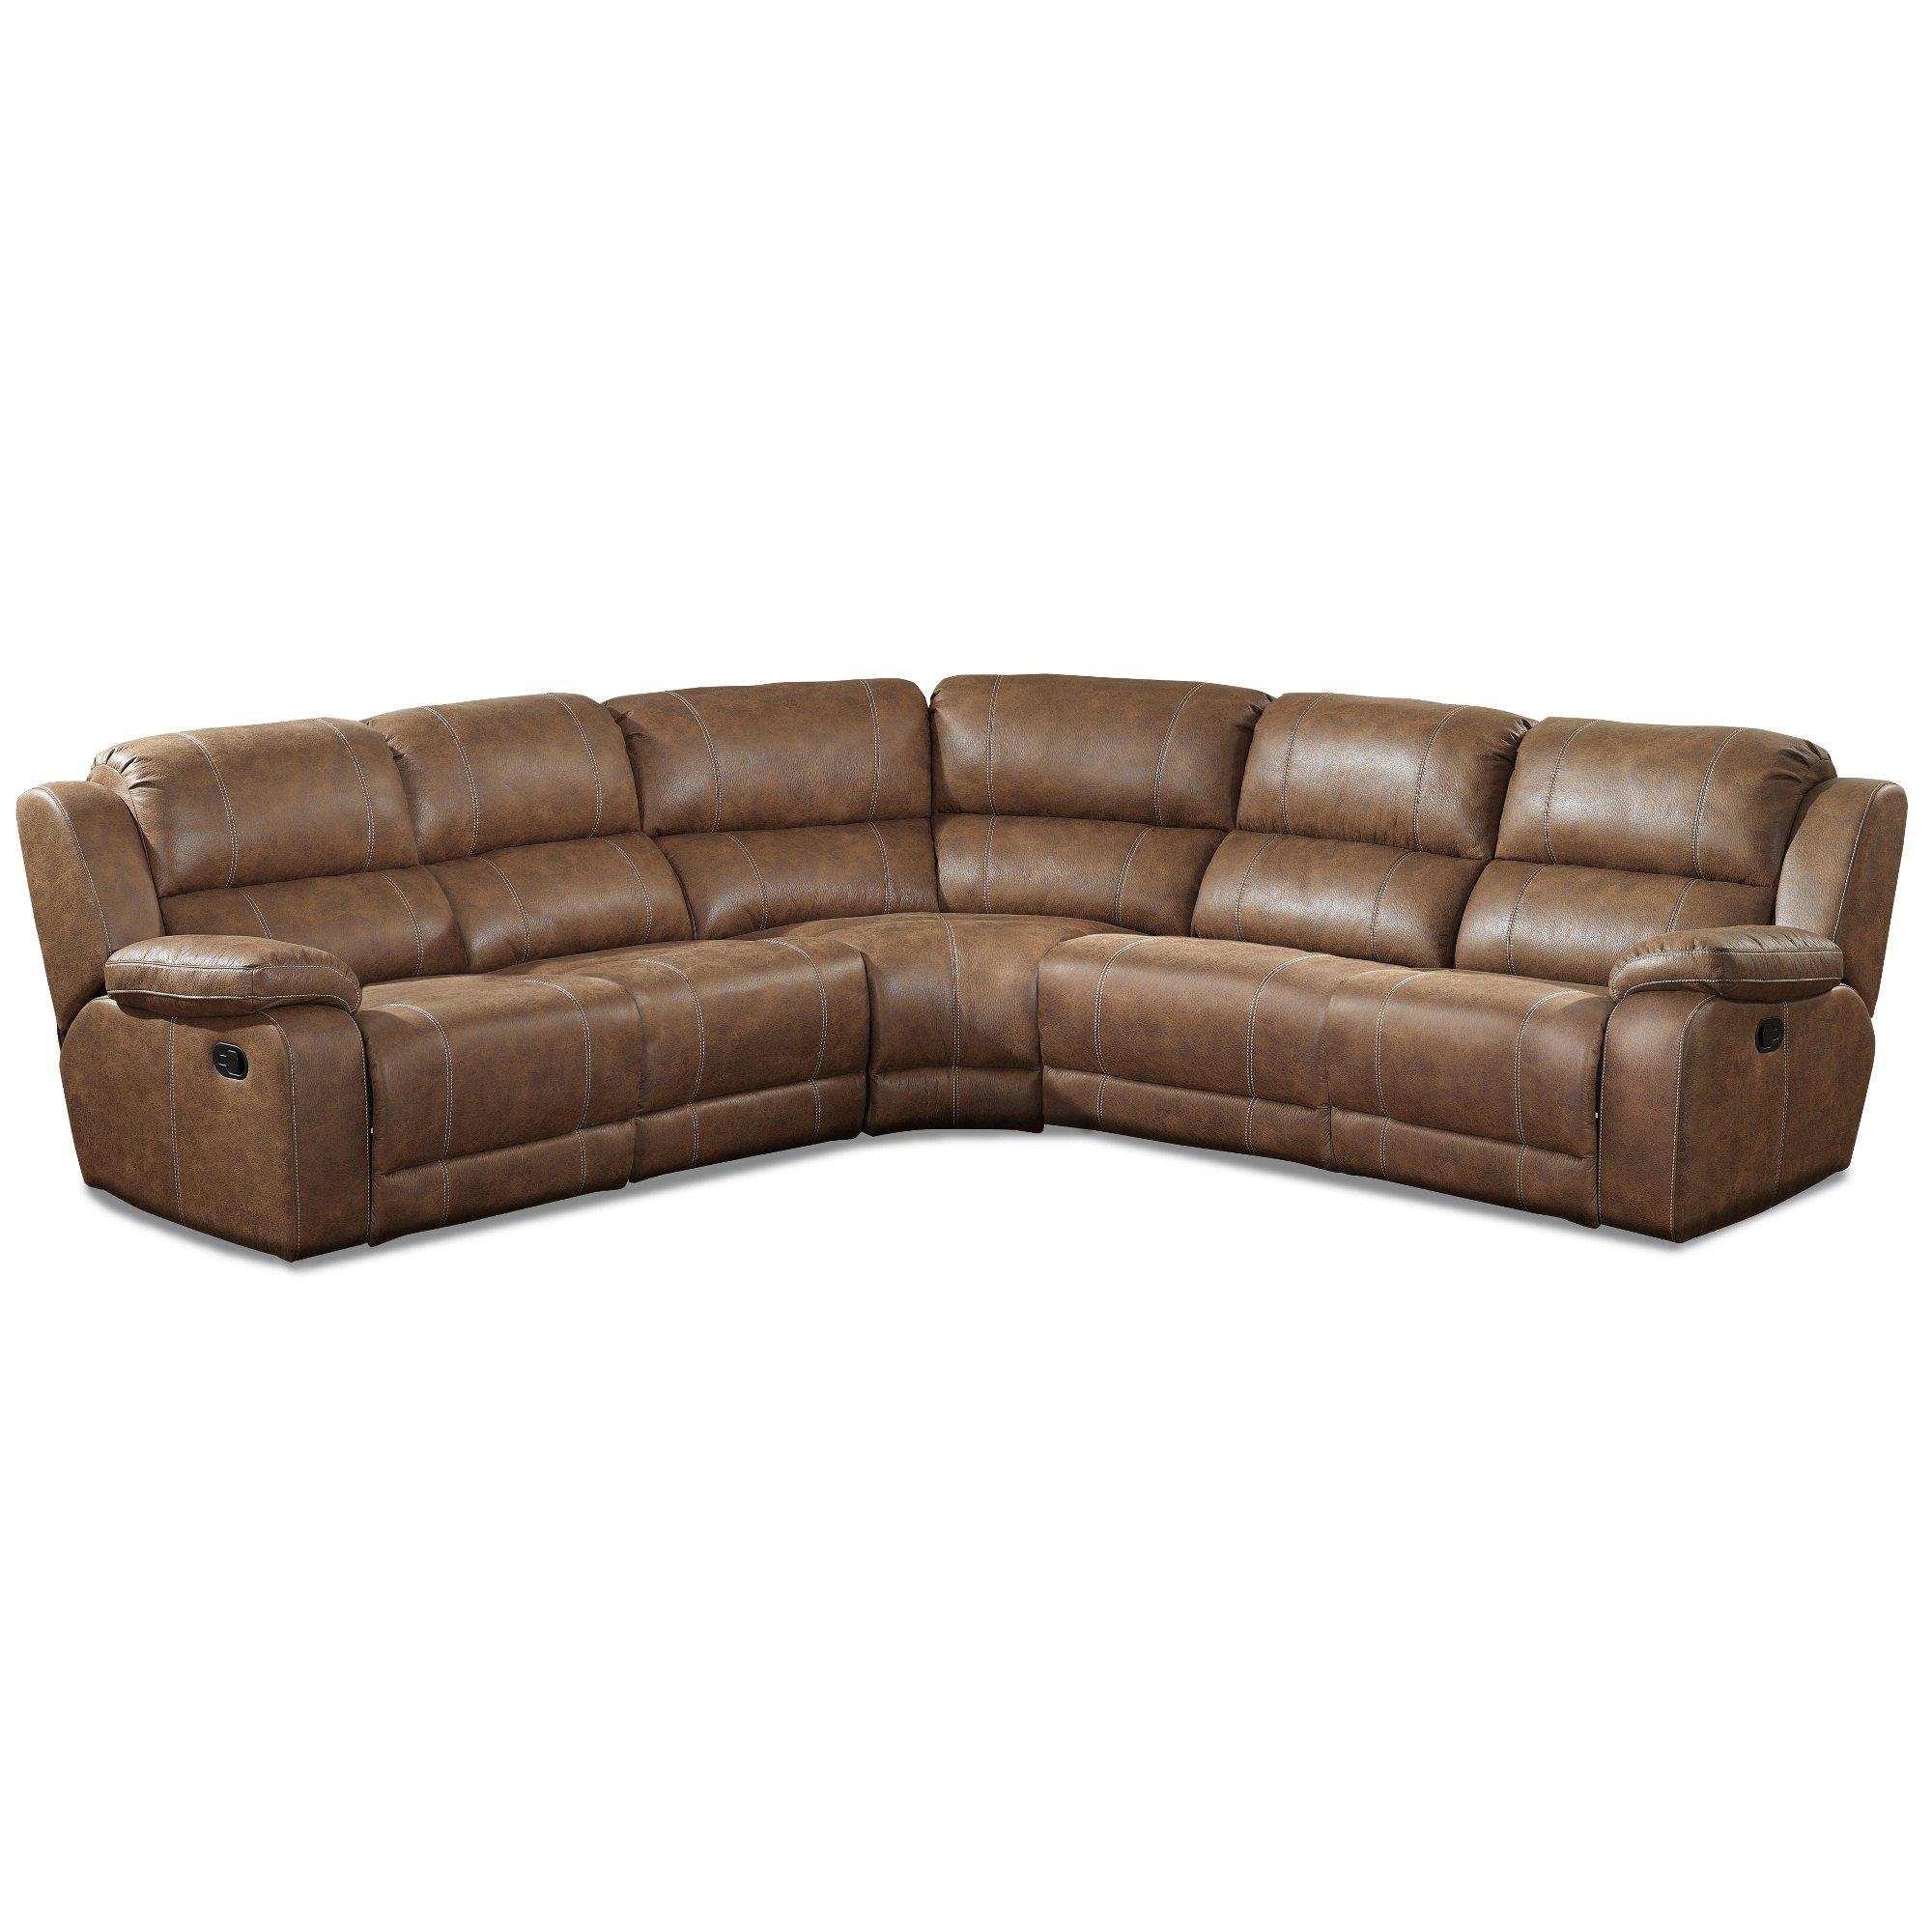 ... Brown 5-Piece Reclining Sectional - Charlotte ...  sc 1 st  RC Willey : leather furniture sectional - Sectionals, Sofas & Couches